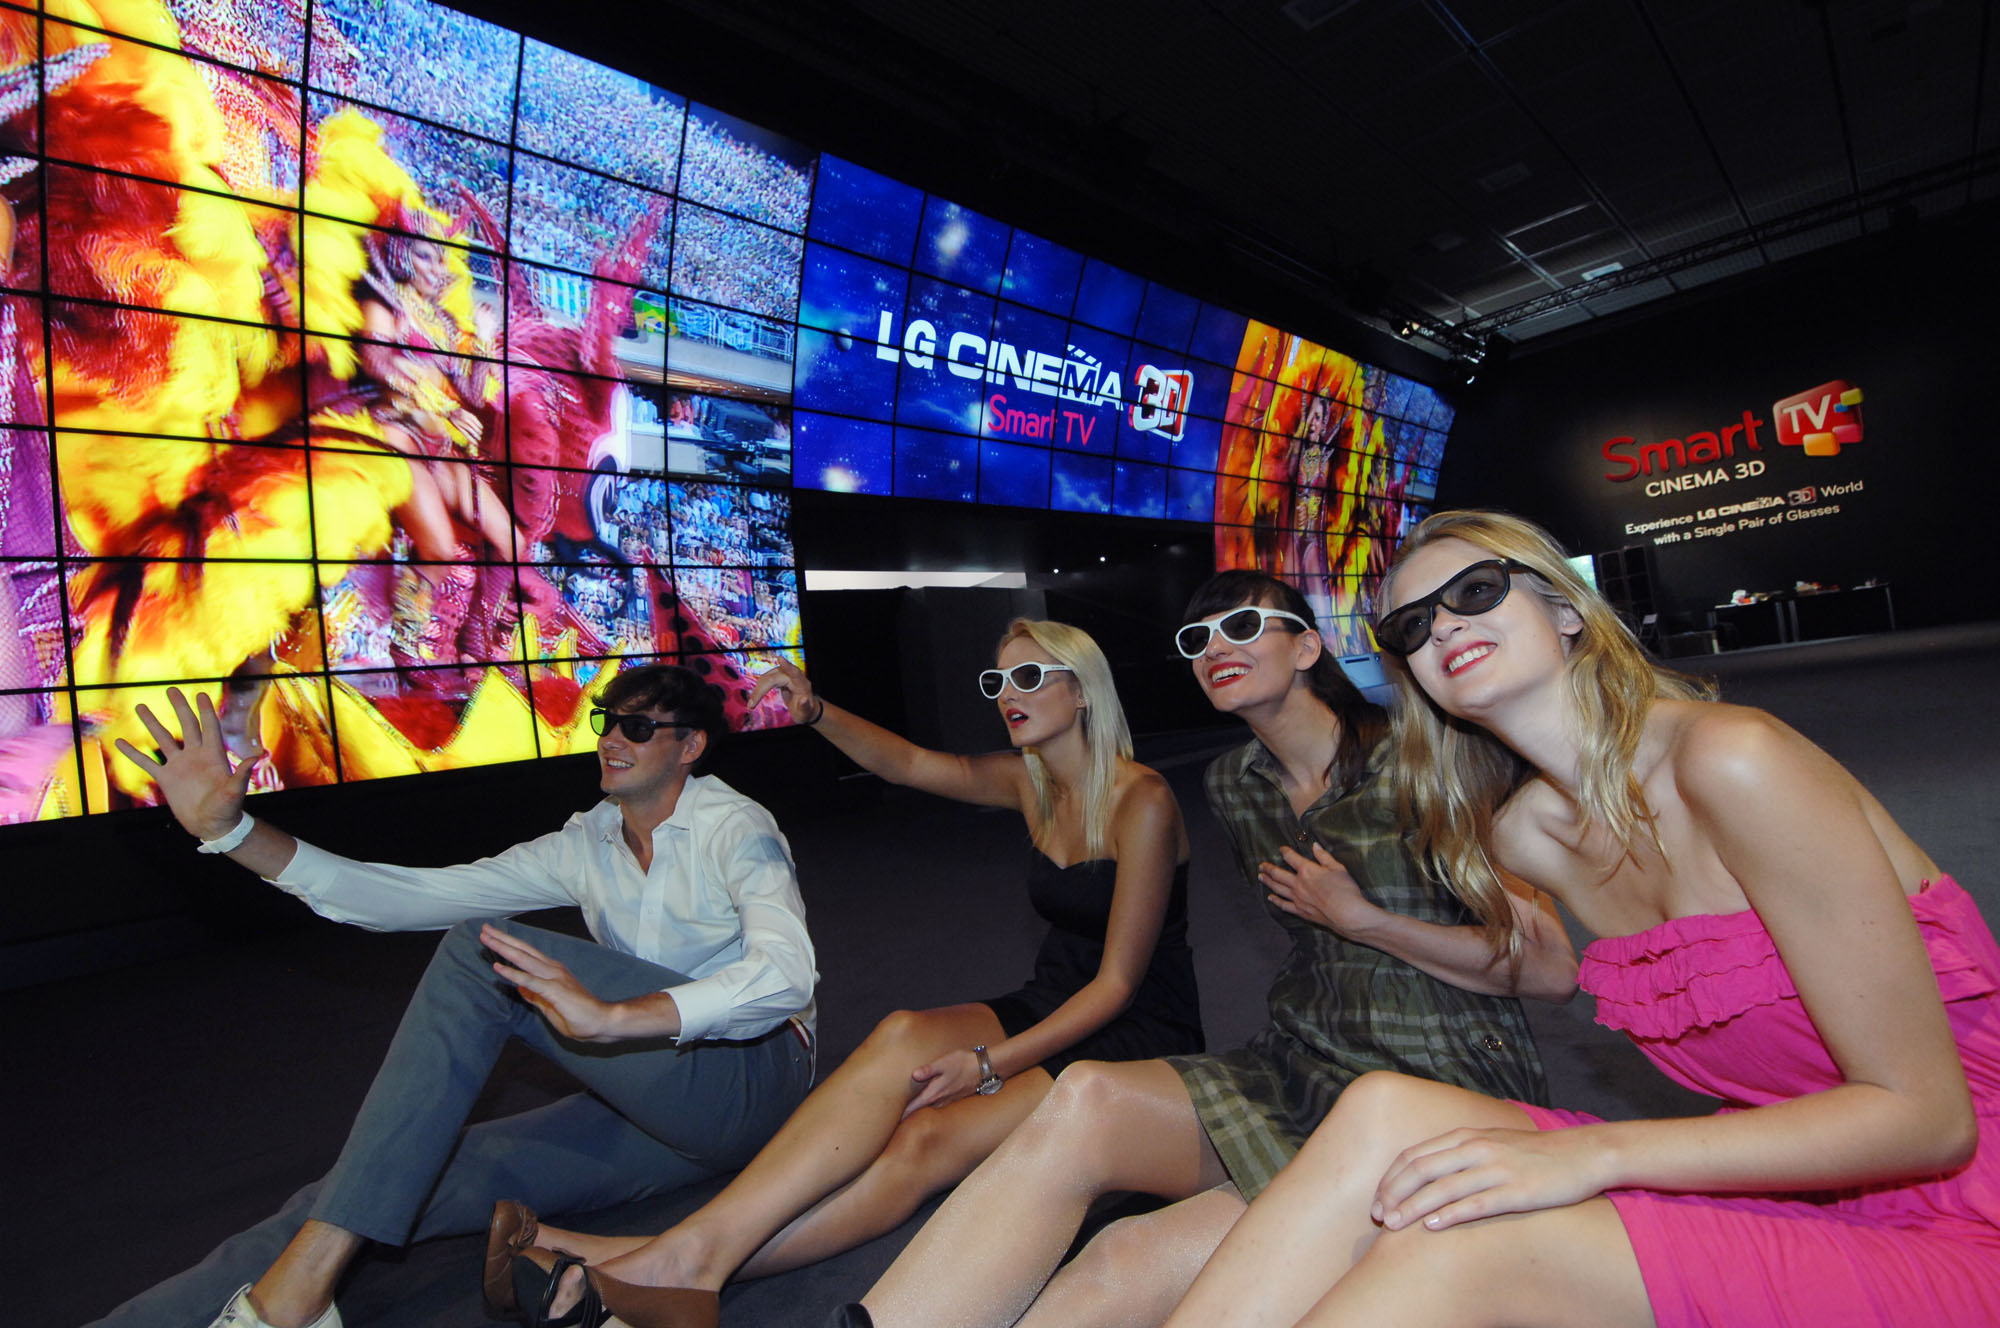 3d video cinema and sex sexy picture